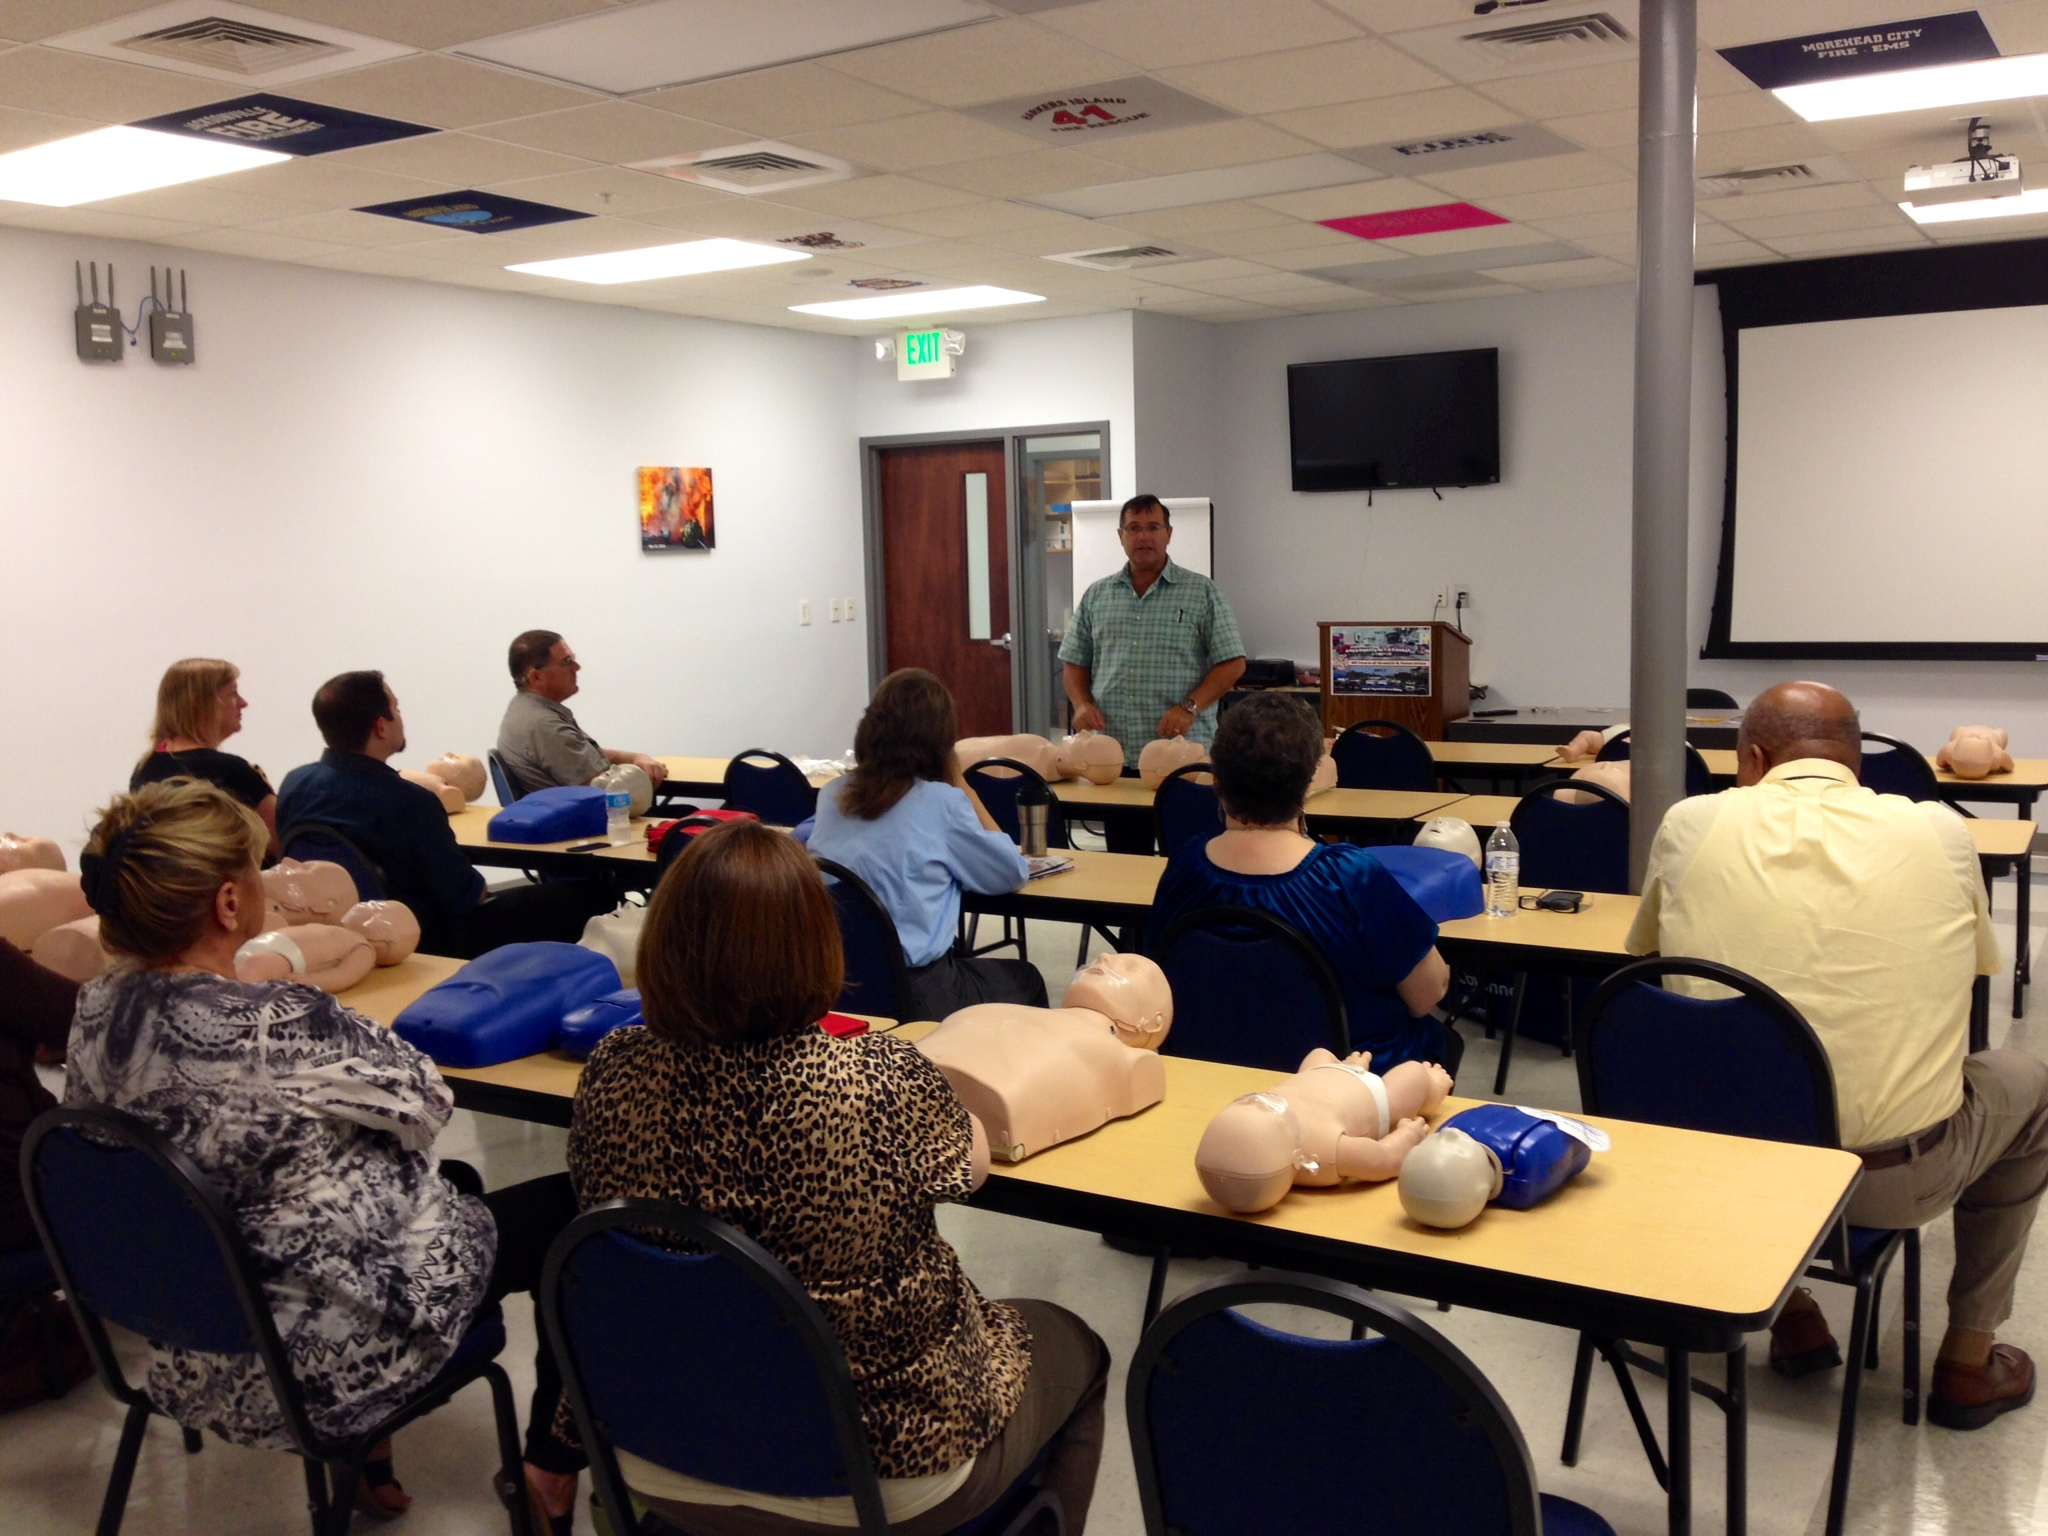 CPR/AED Training 09